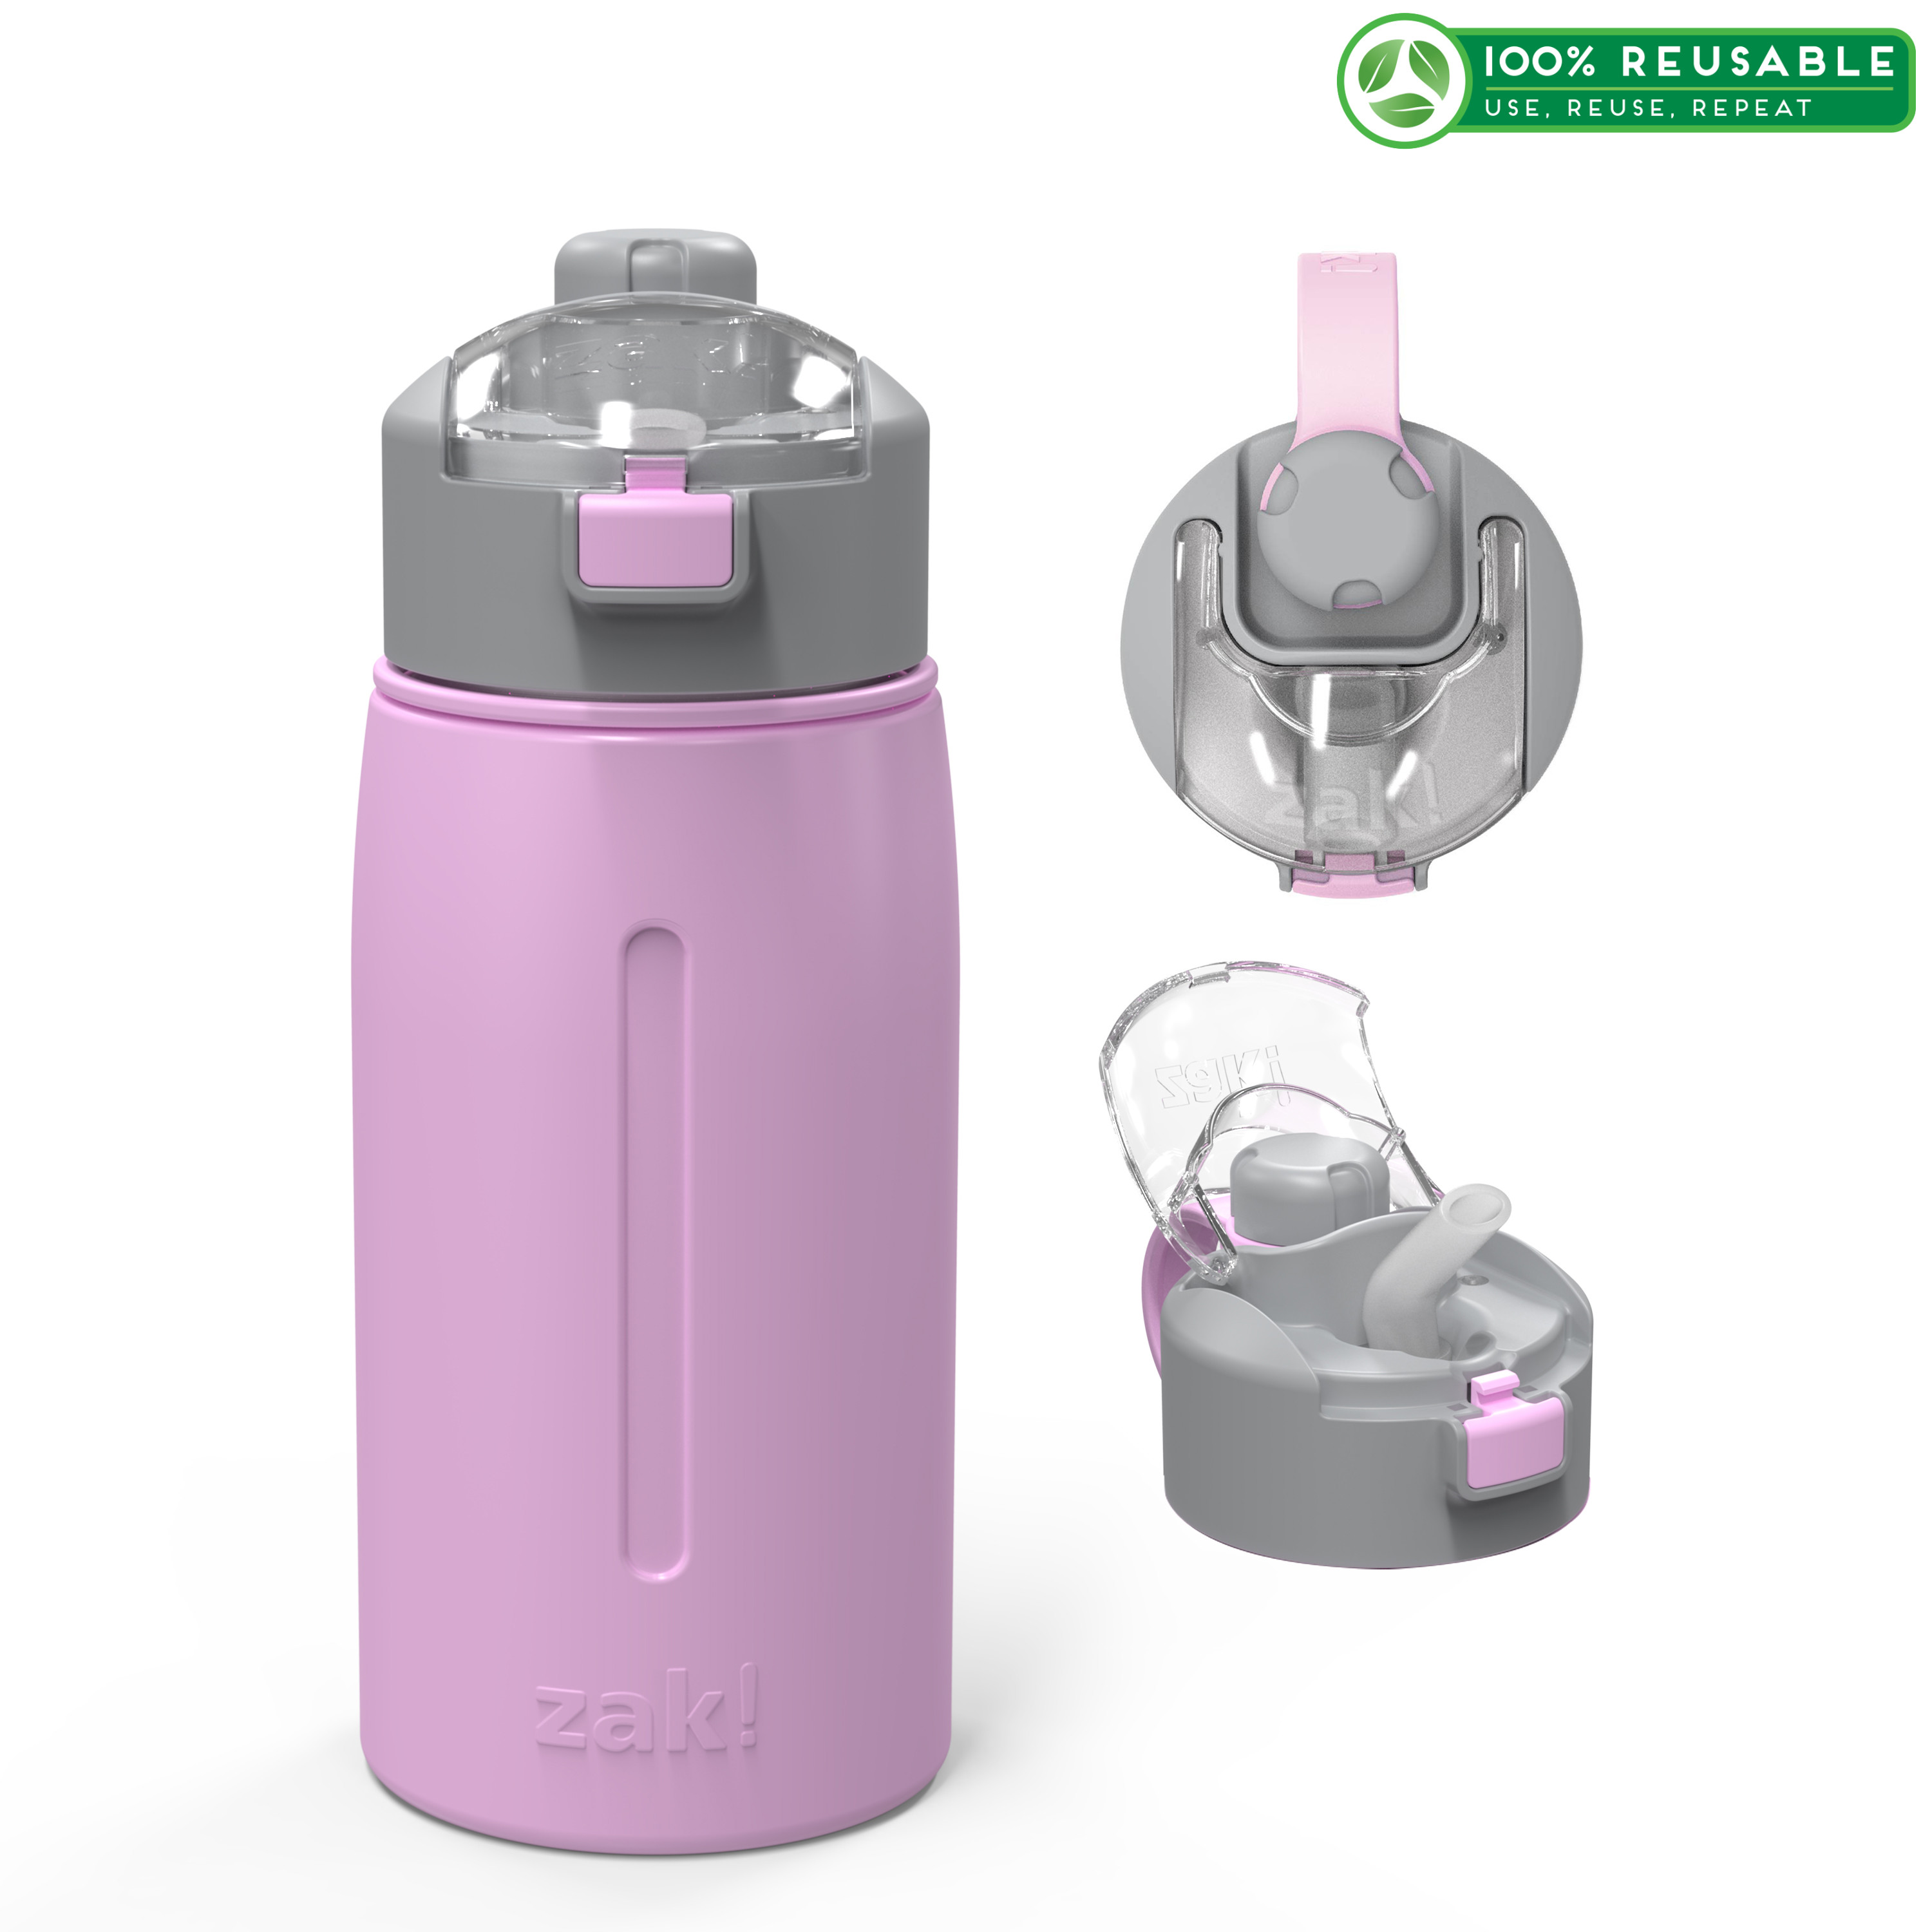 Genesis 18 ounce Vacuum Insulated Stainless Steel Tumbler, Lilac slideshow image 1